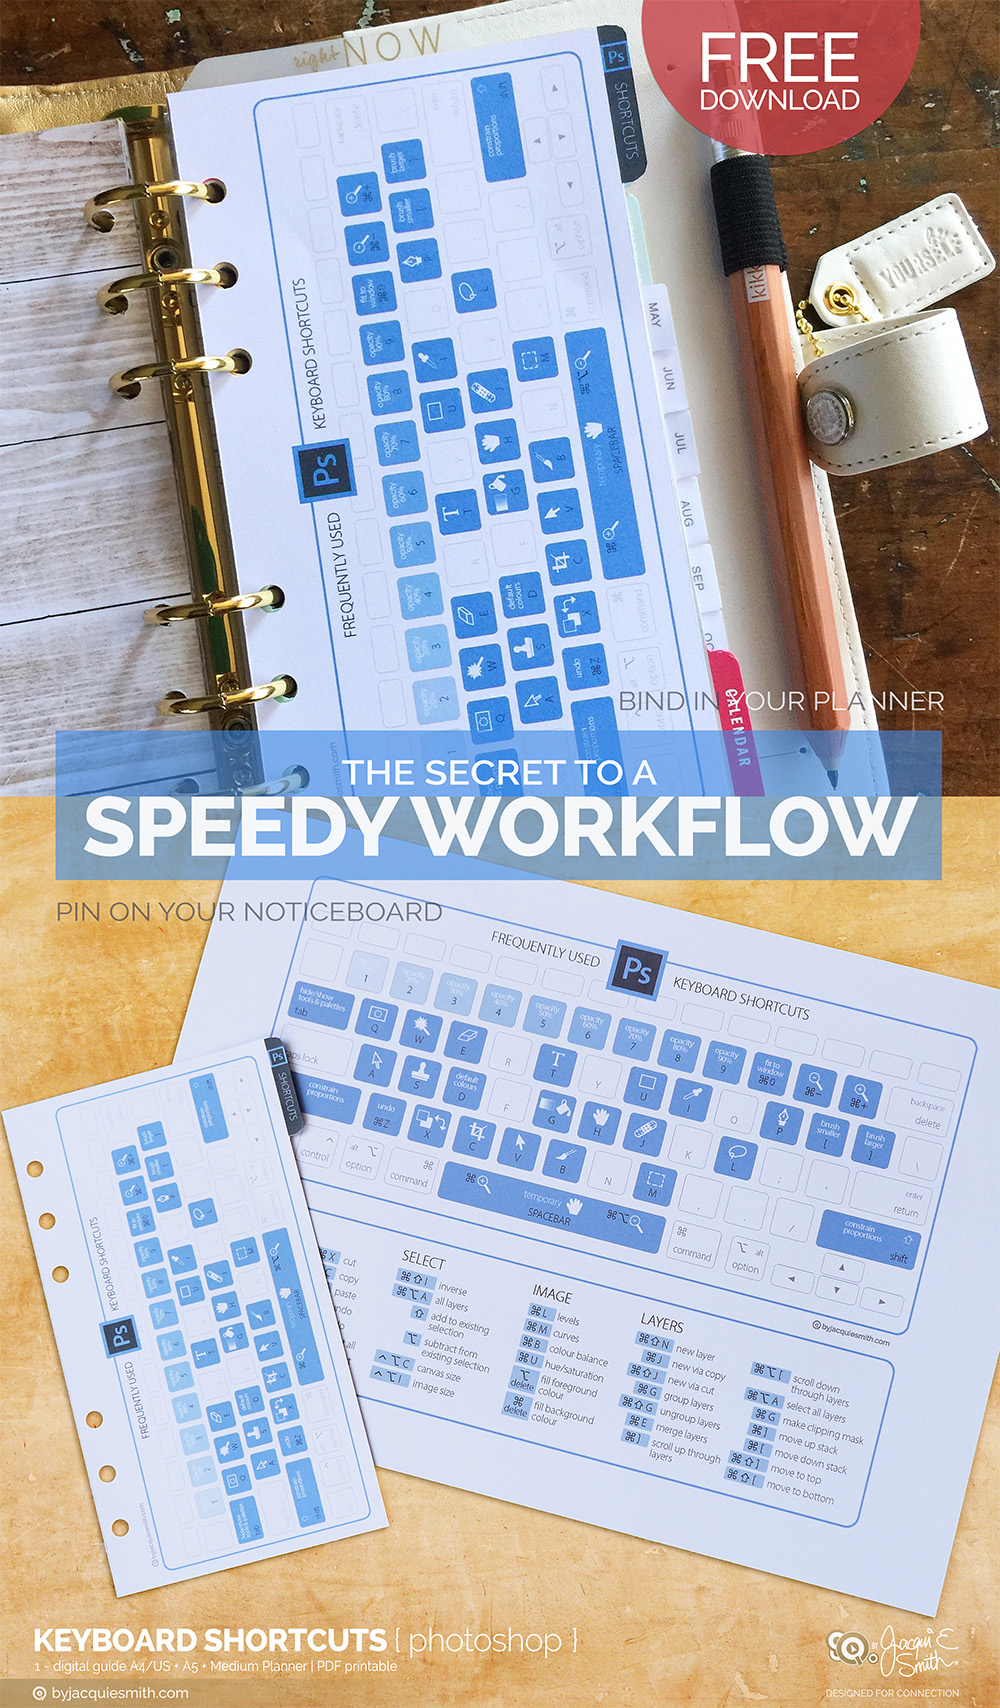 Speed Up Your Workflow with a free Photoshop Keyboard Shortcuts printable at www.byjacquiesmith.com